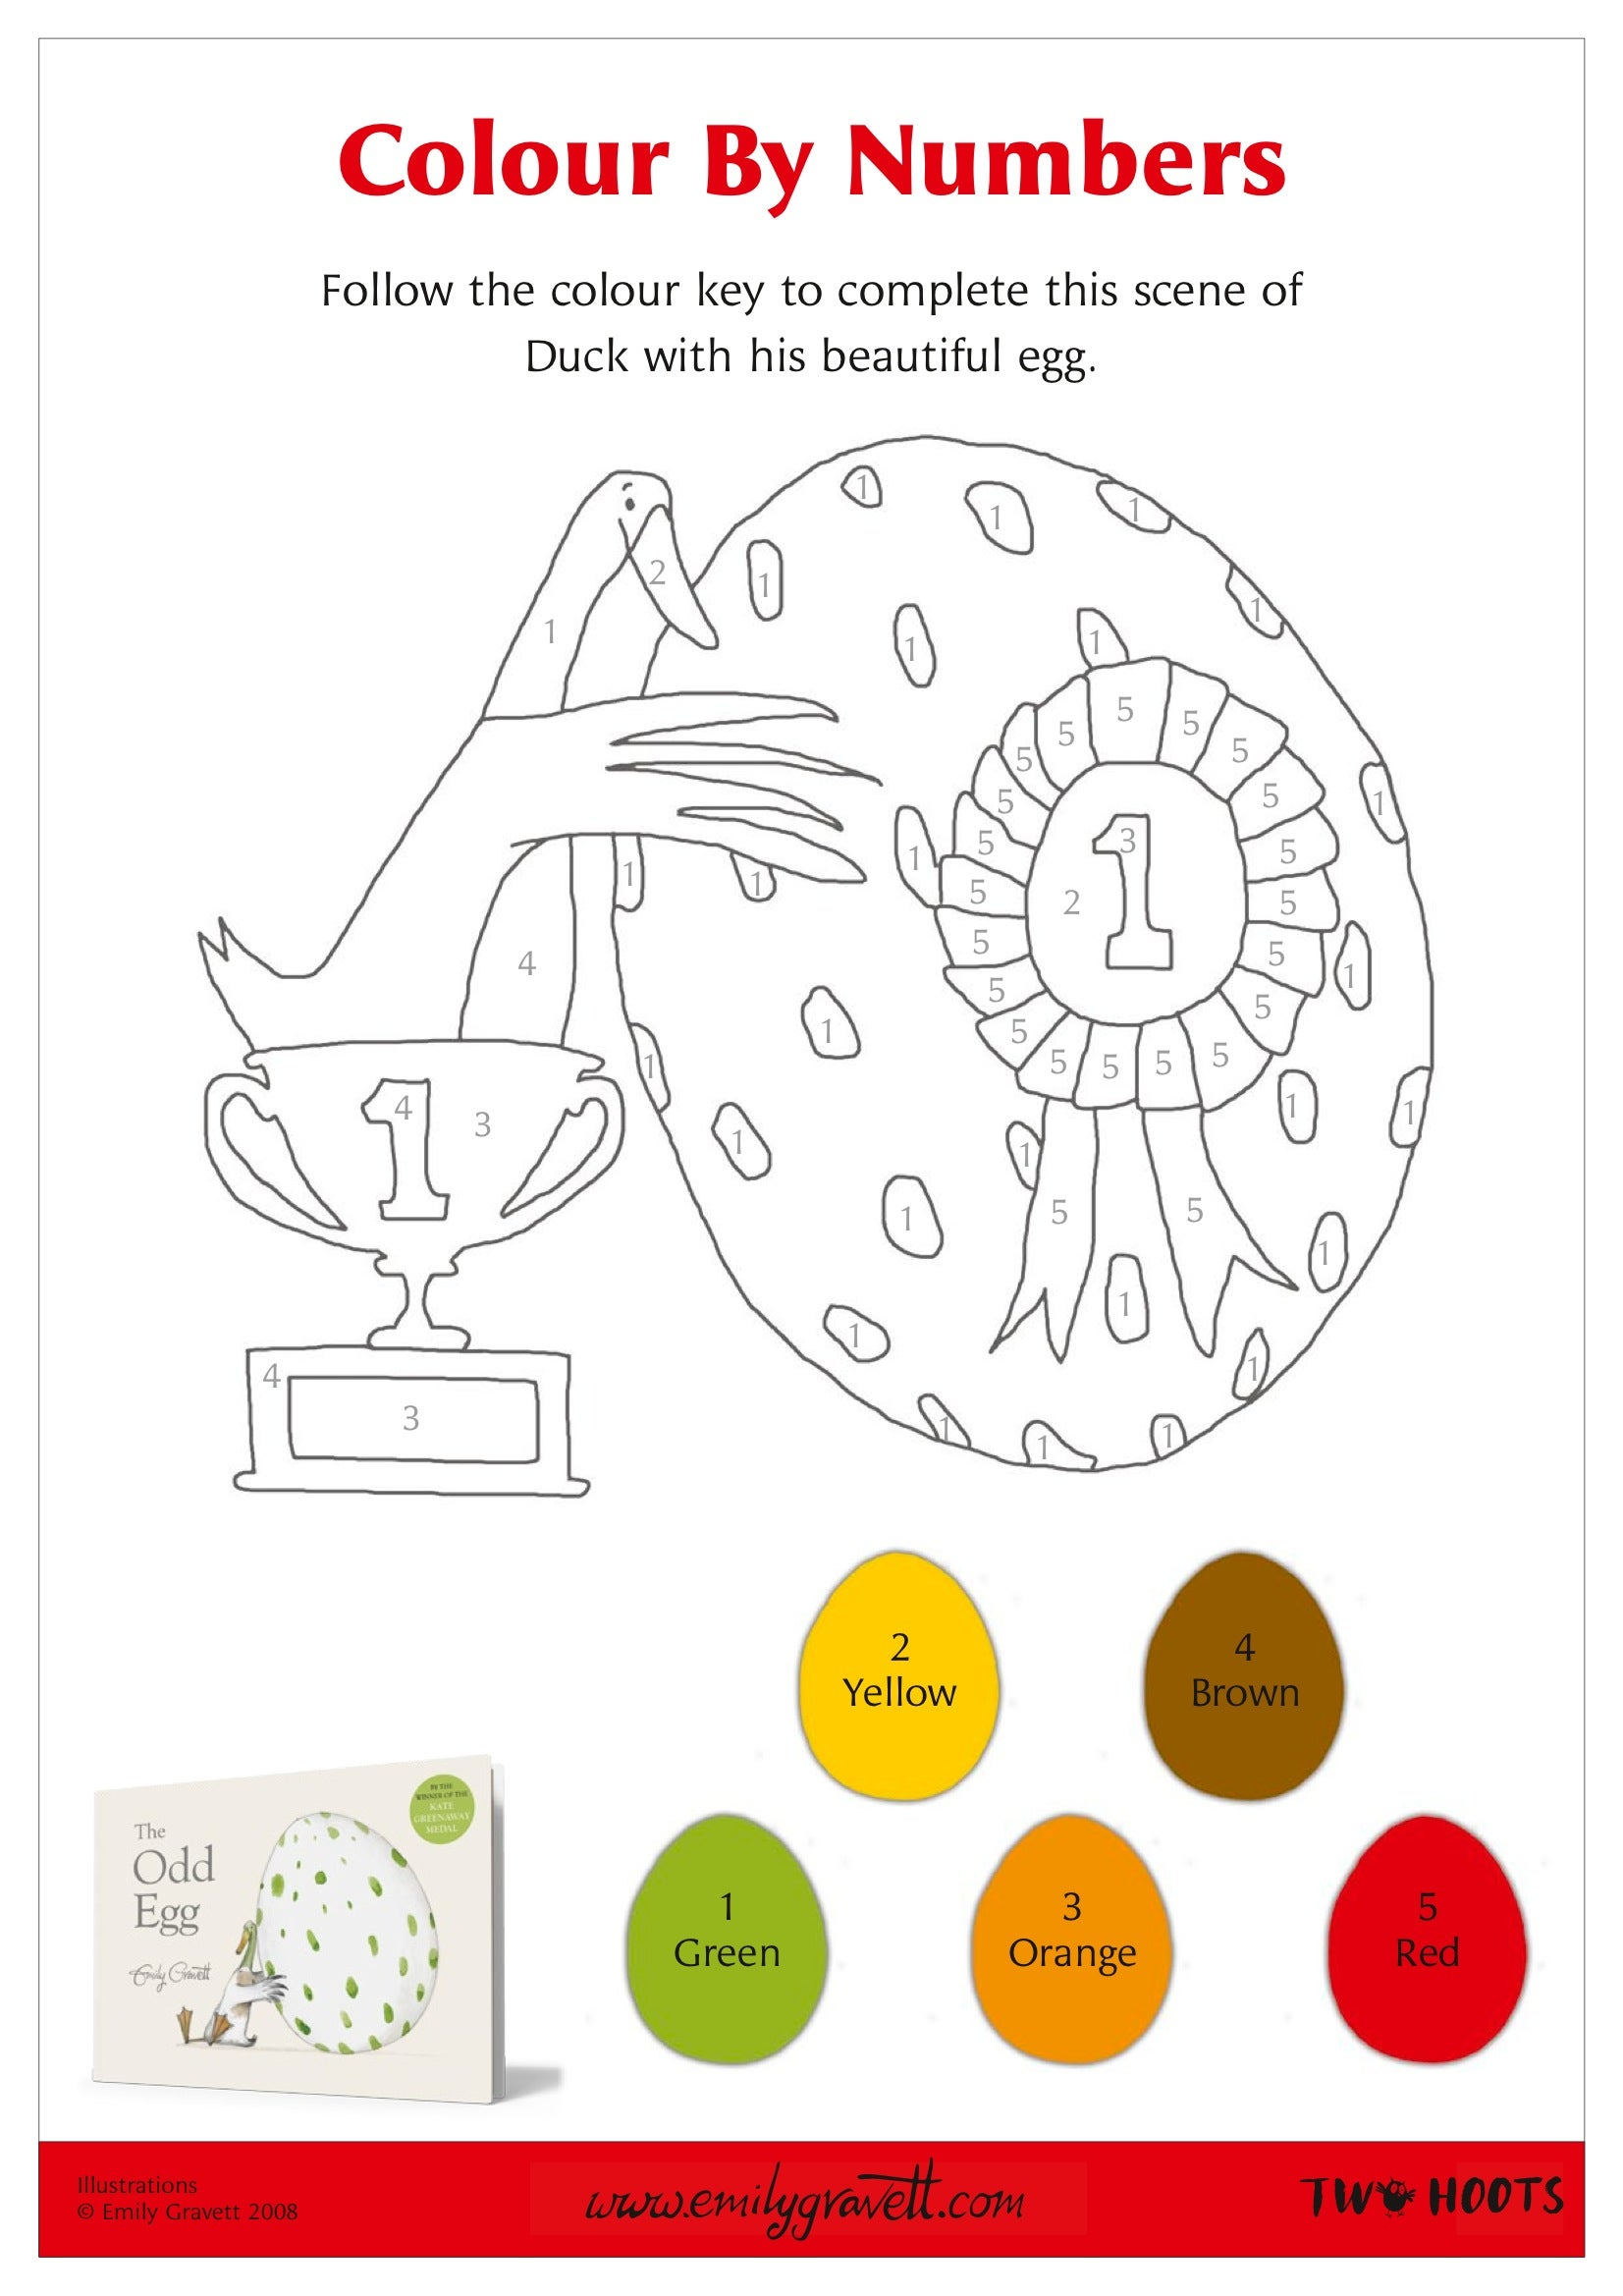 Odd-Egg-Colour-By-Numbers.jpg